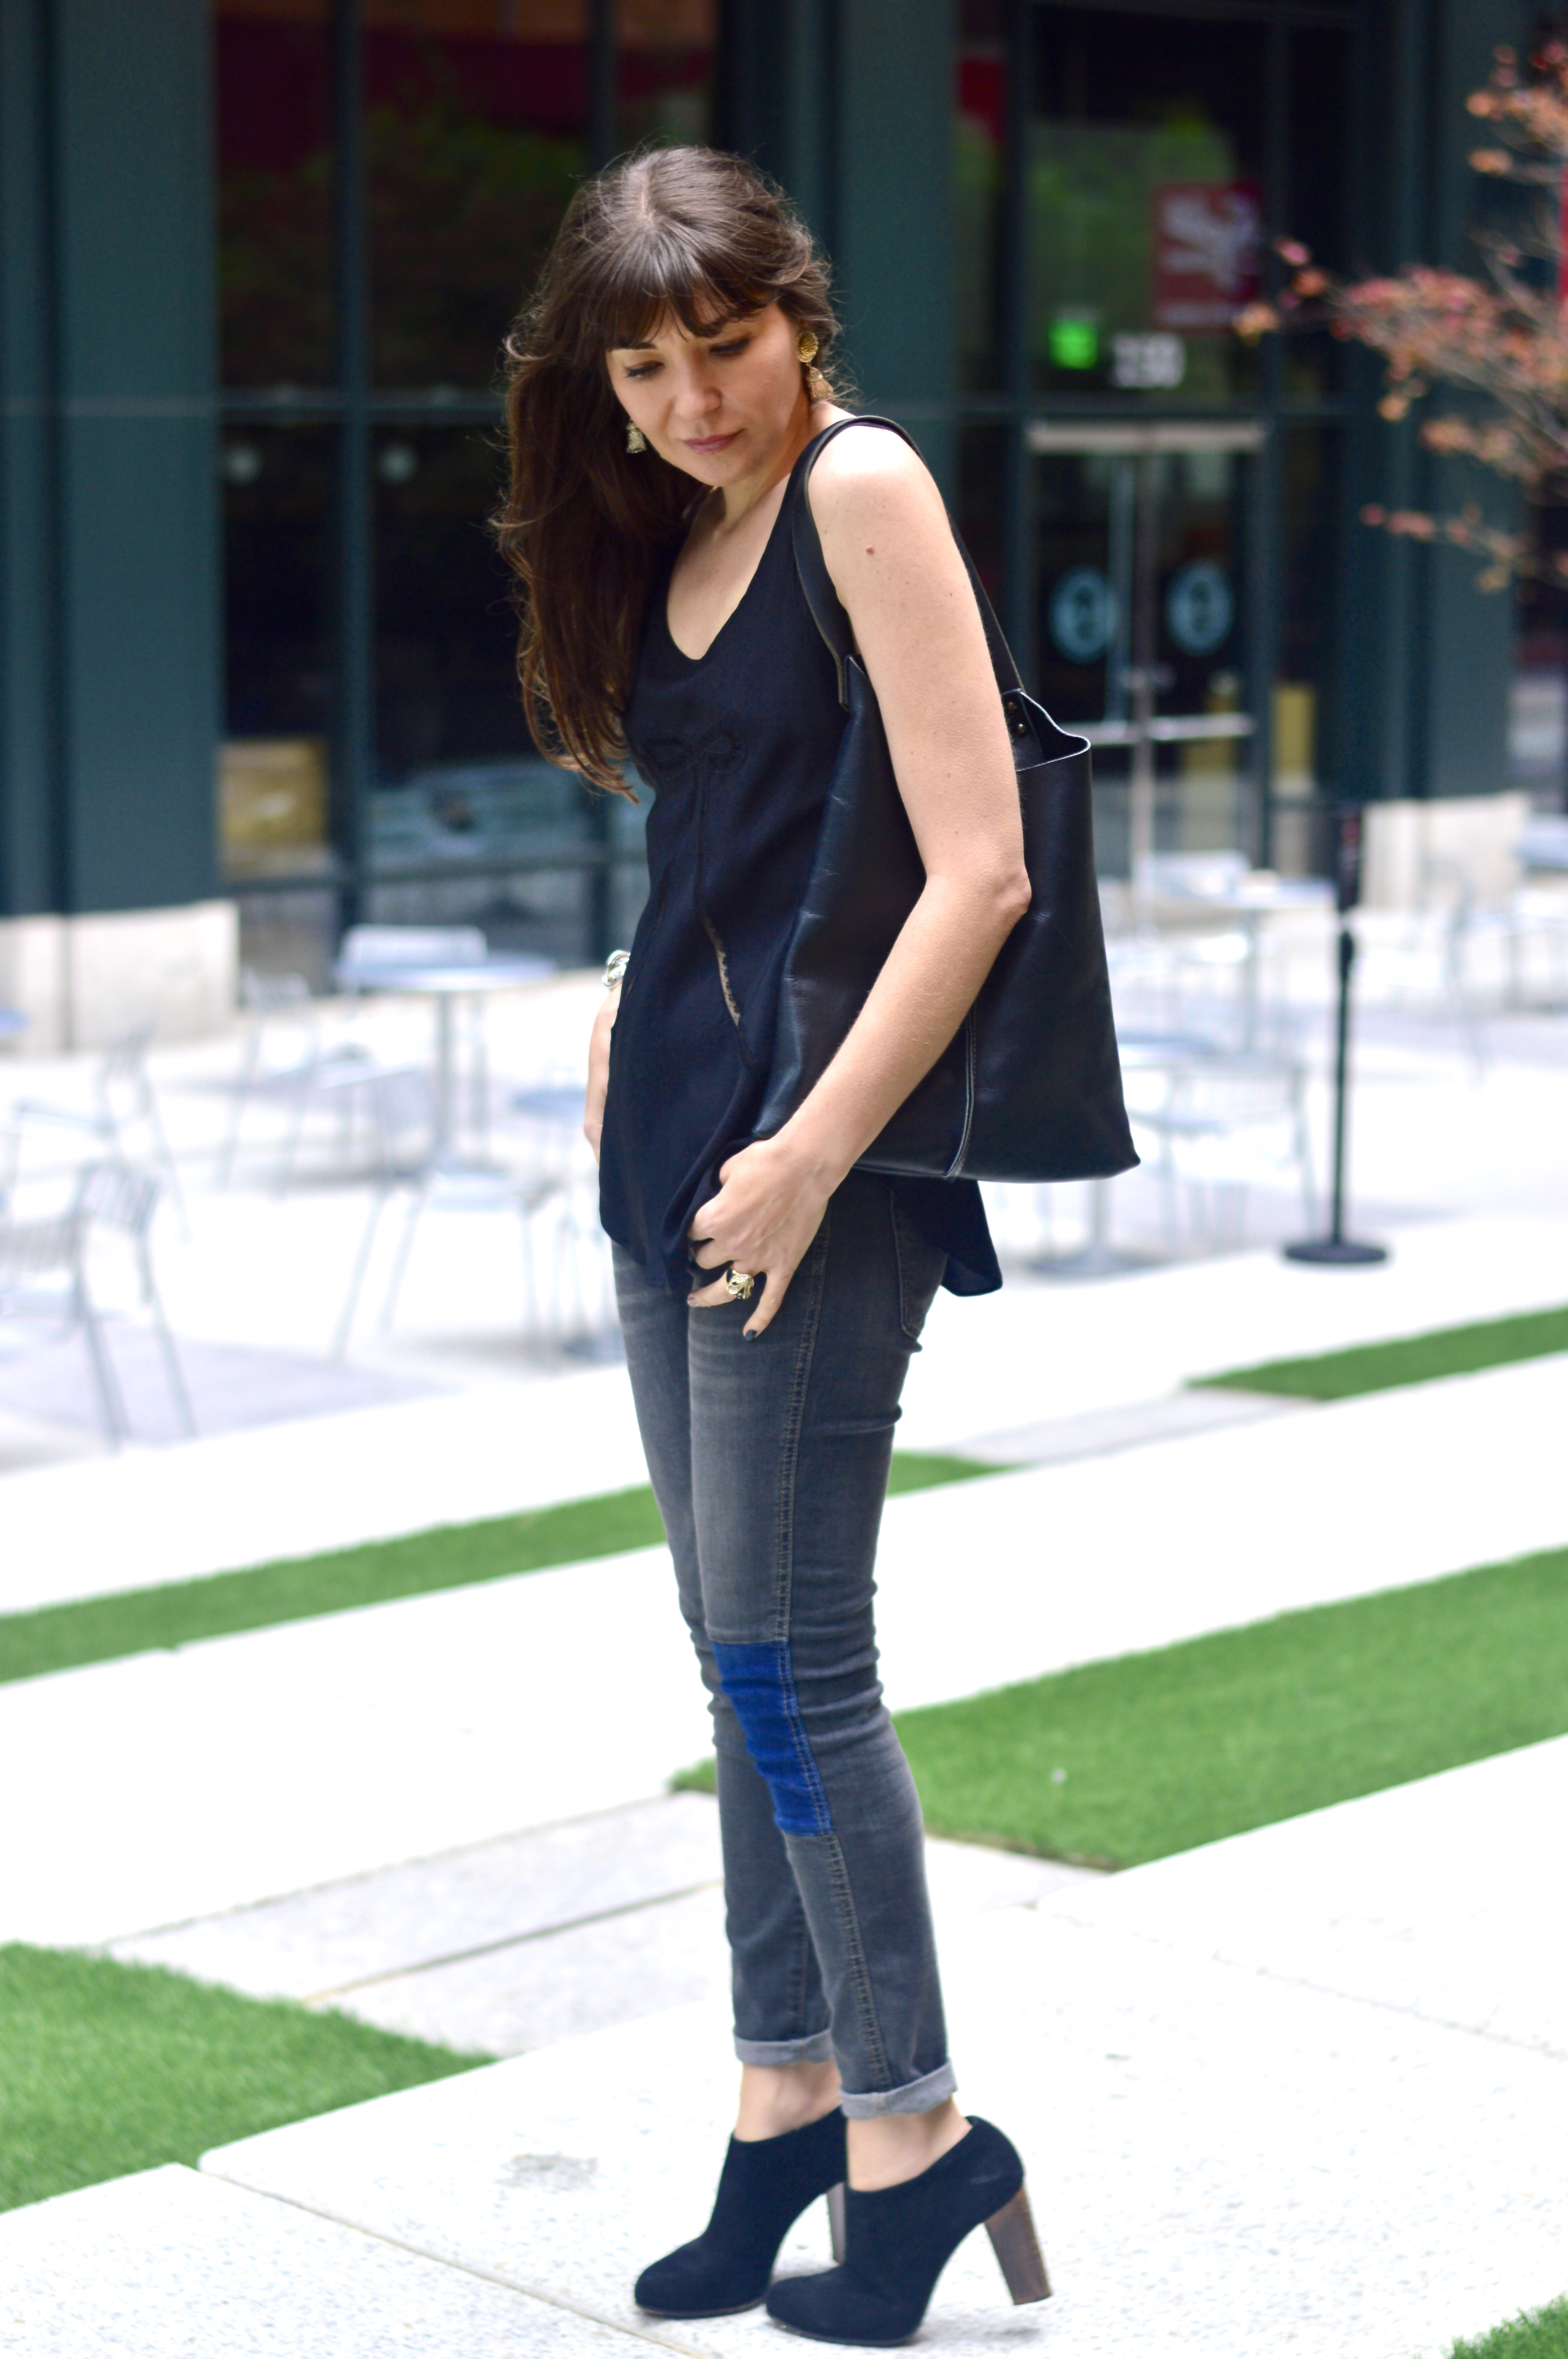 Cami top and jeans.